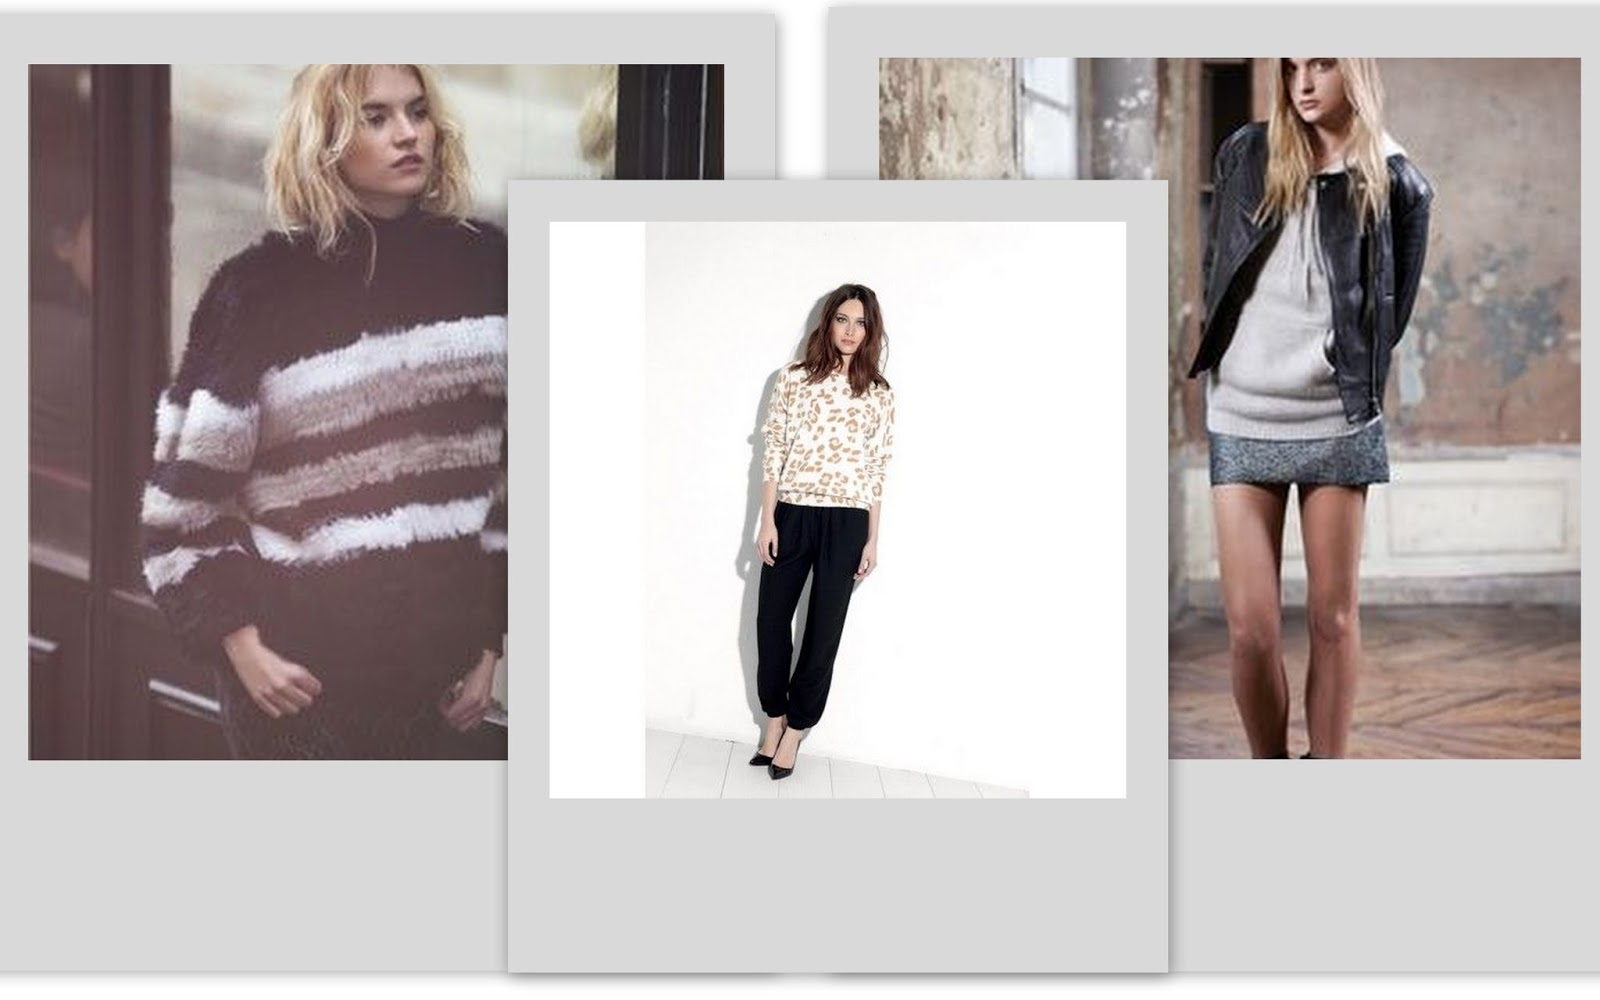 Comfy knit, striped knit, animal print, Virgine Castway, hoodie and biker, April May fall 13 lookbook